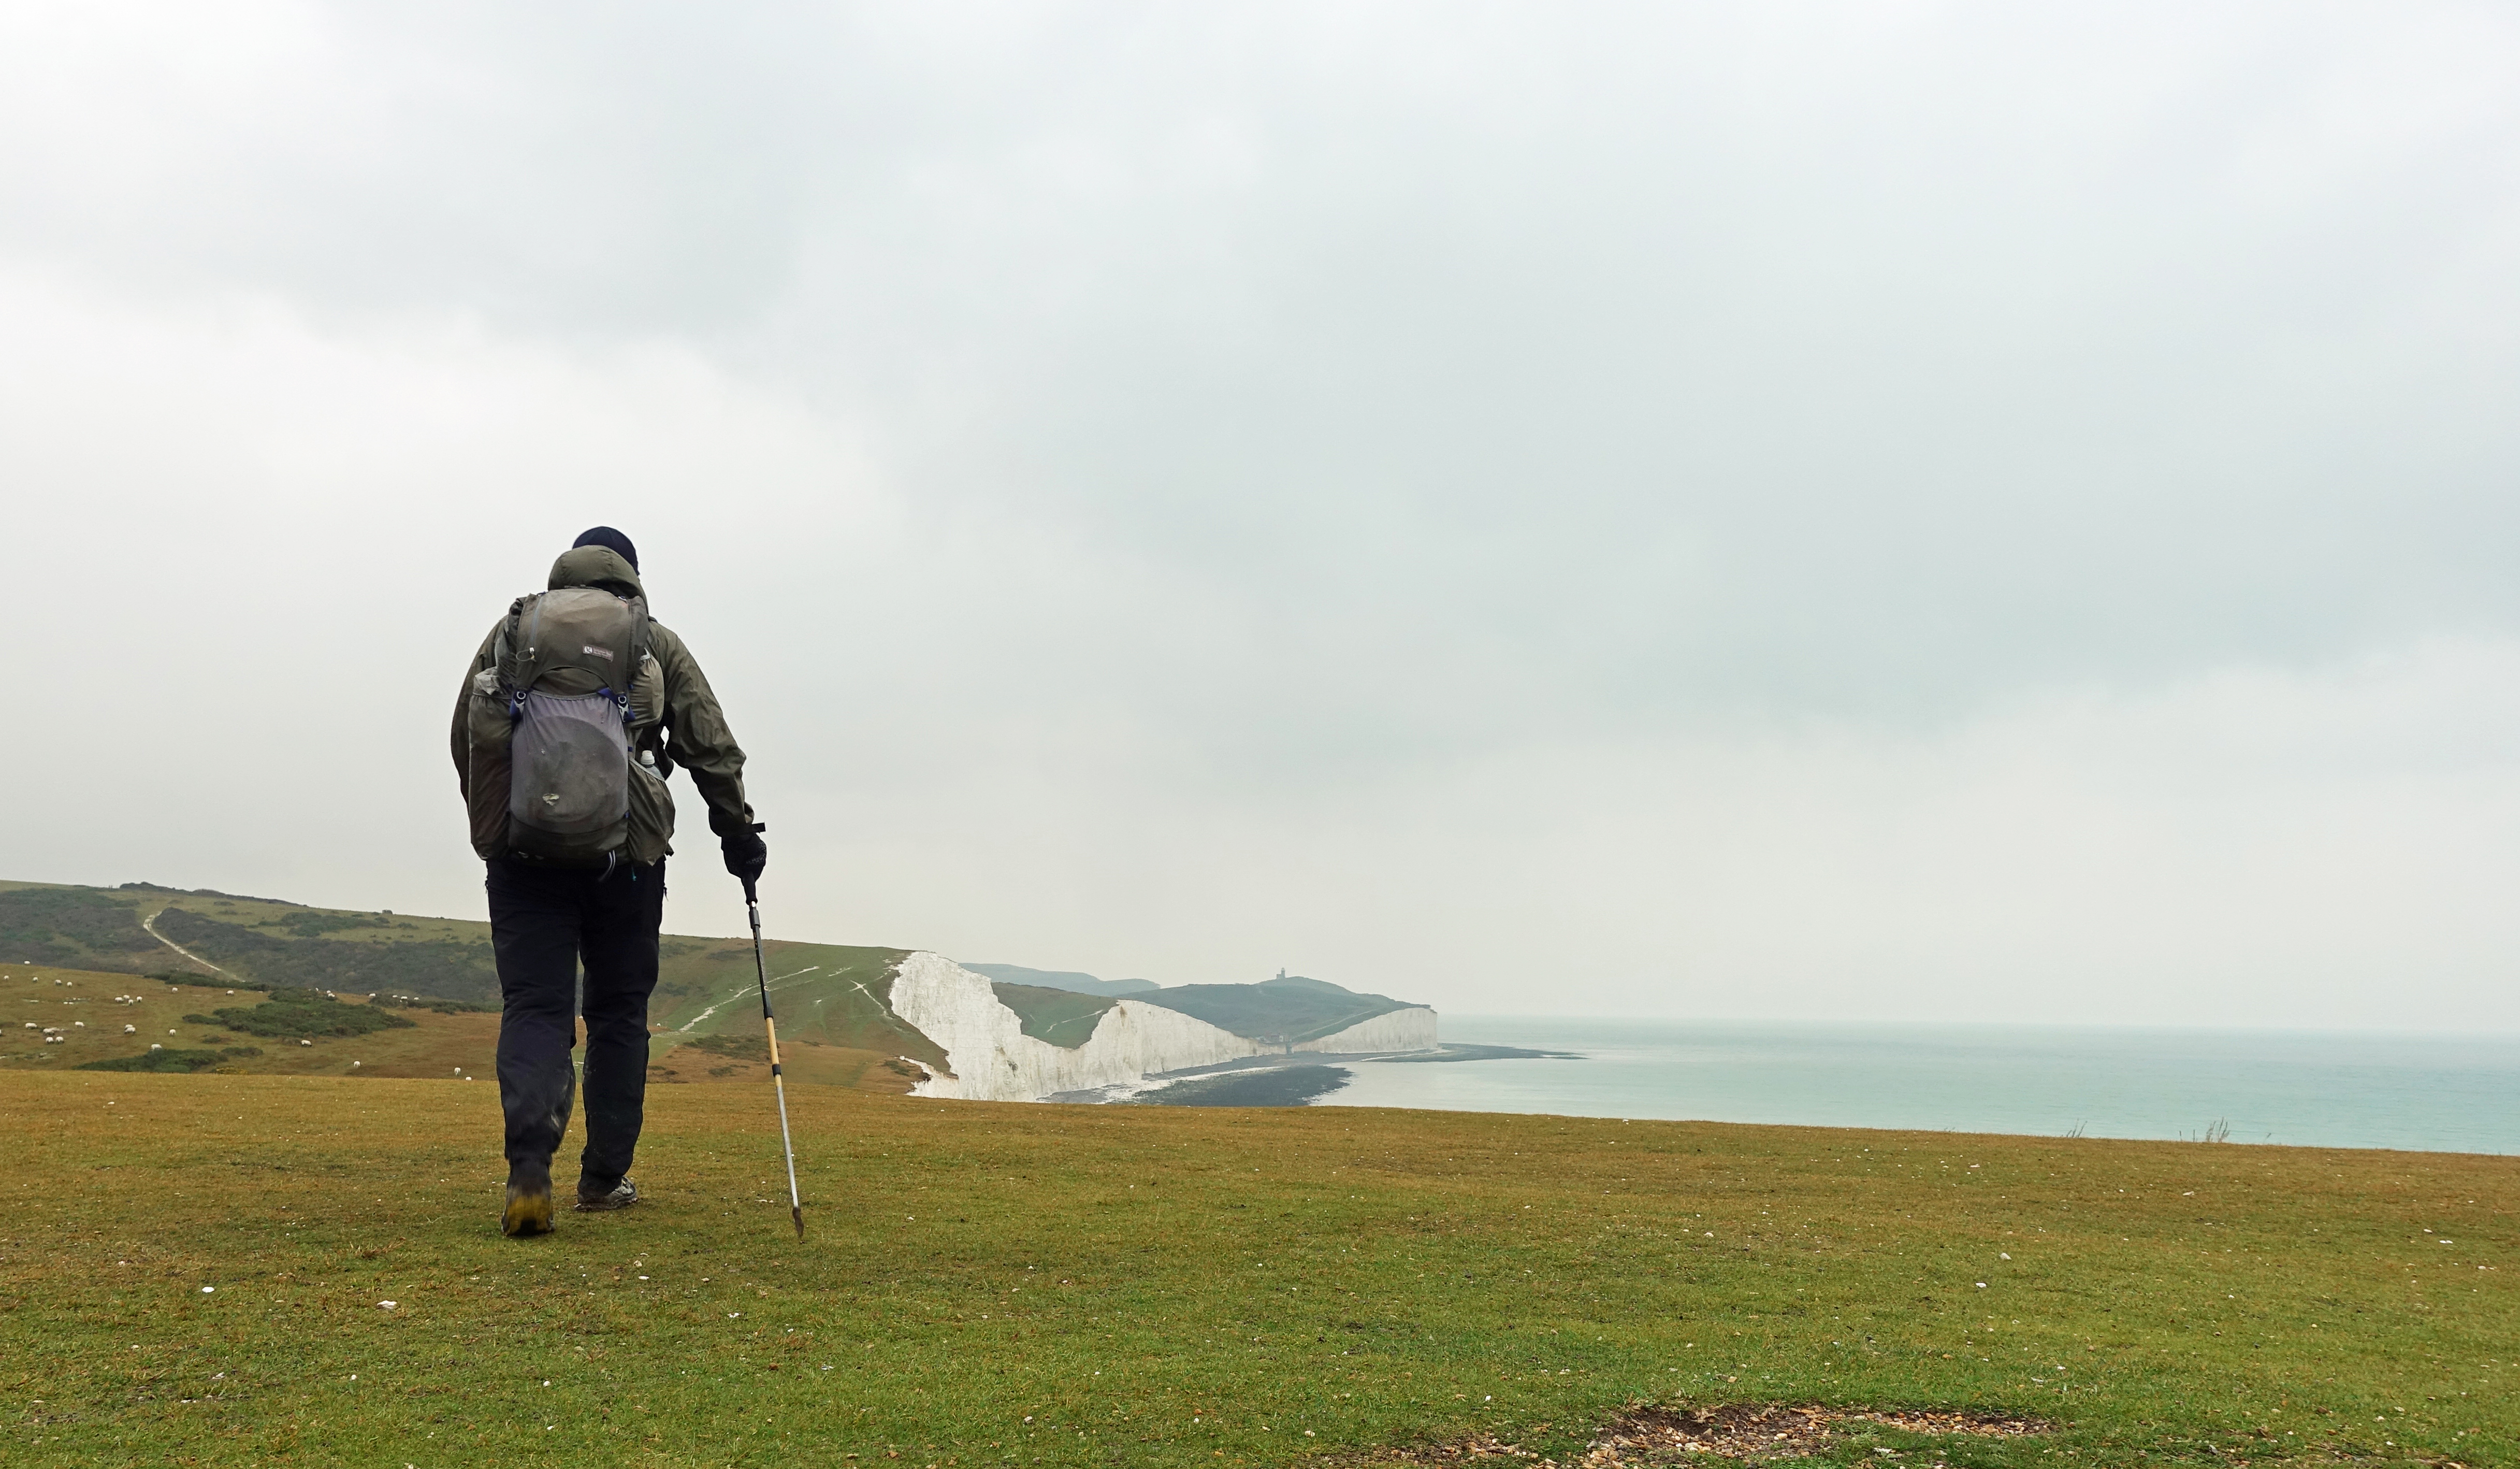 The South Downs Way crosses the National Park. Here, Three Points of the Compass approachews the Seven Sisters on the final day of his walk